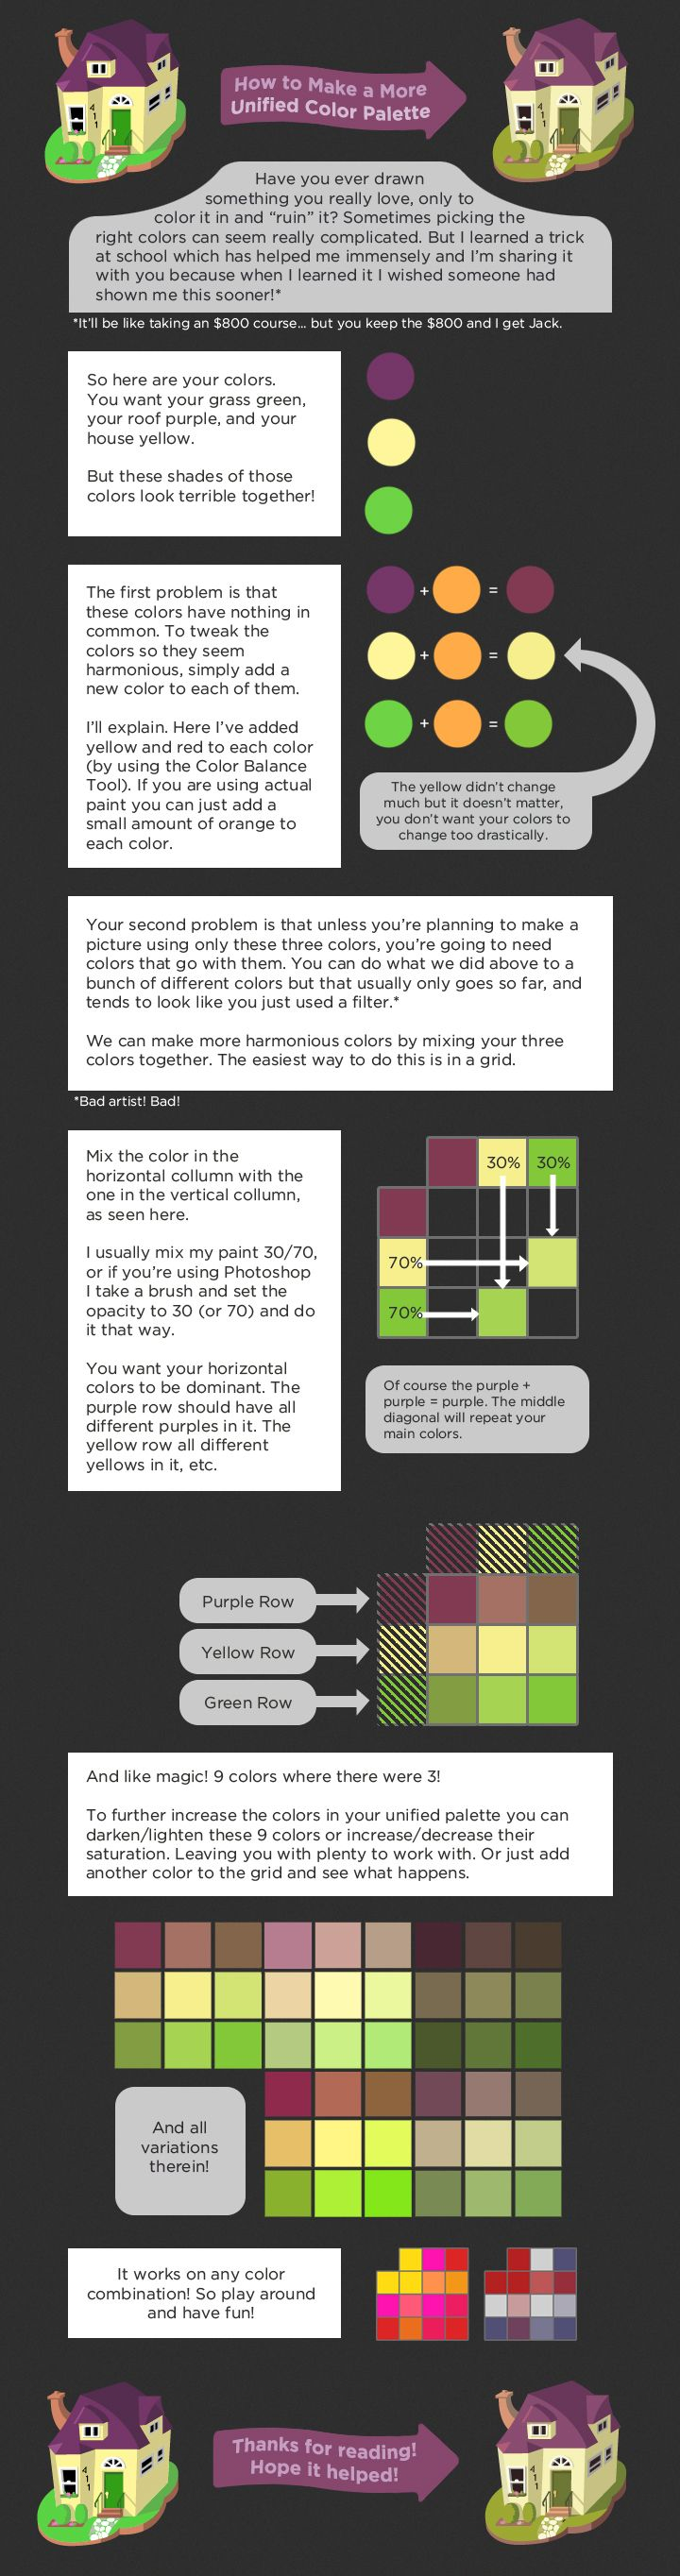 Unified Color Palette Tutorial by ~Cpresti on deviantART